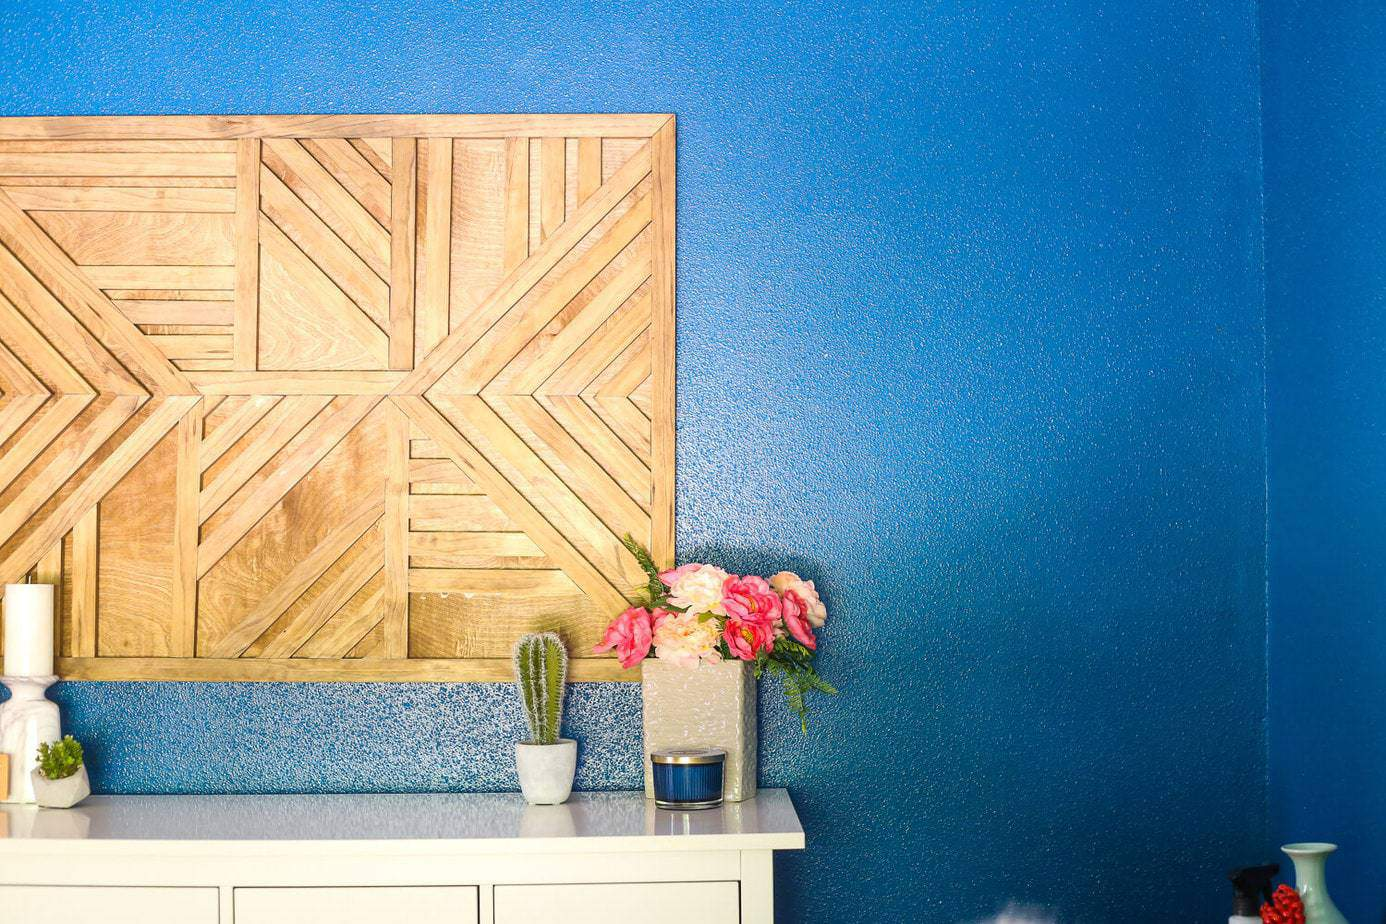 How to create a gorgeous large-scale geometric wood wall art piece for your home. You just need some glue and a saw to cut it down! It's so easy that even a total beginner can do it, and it's absolutely gorgeous!